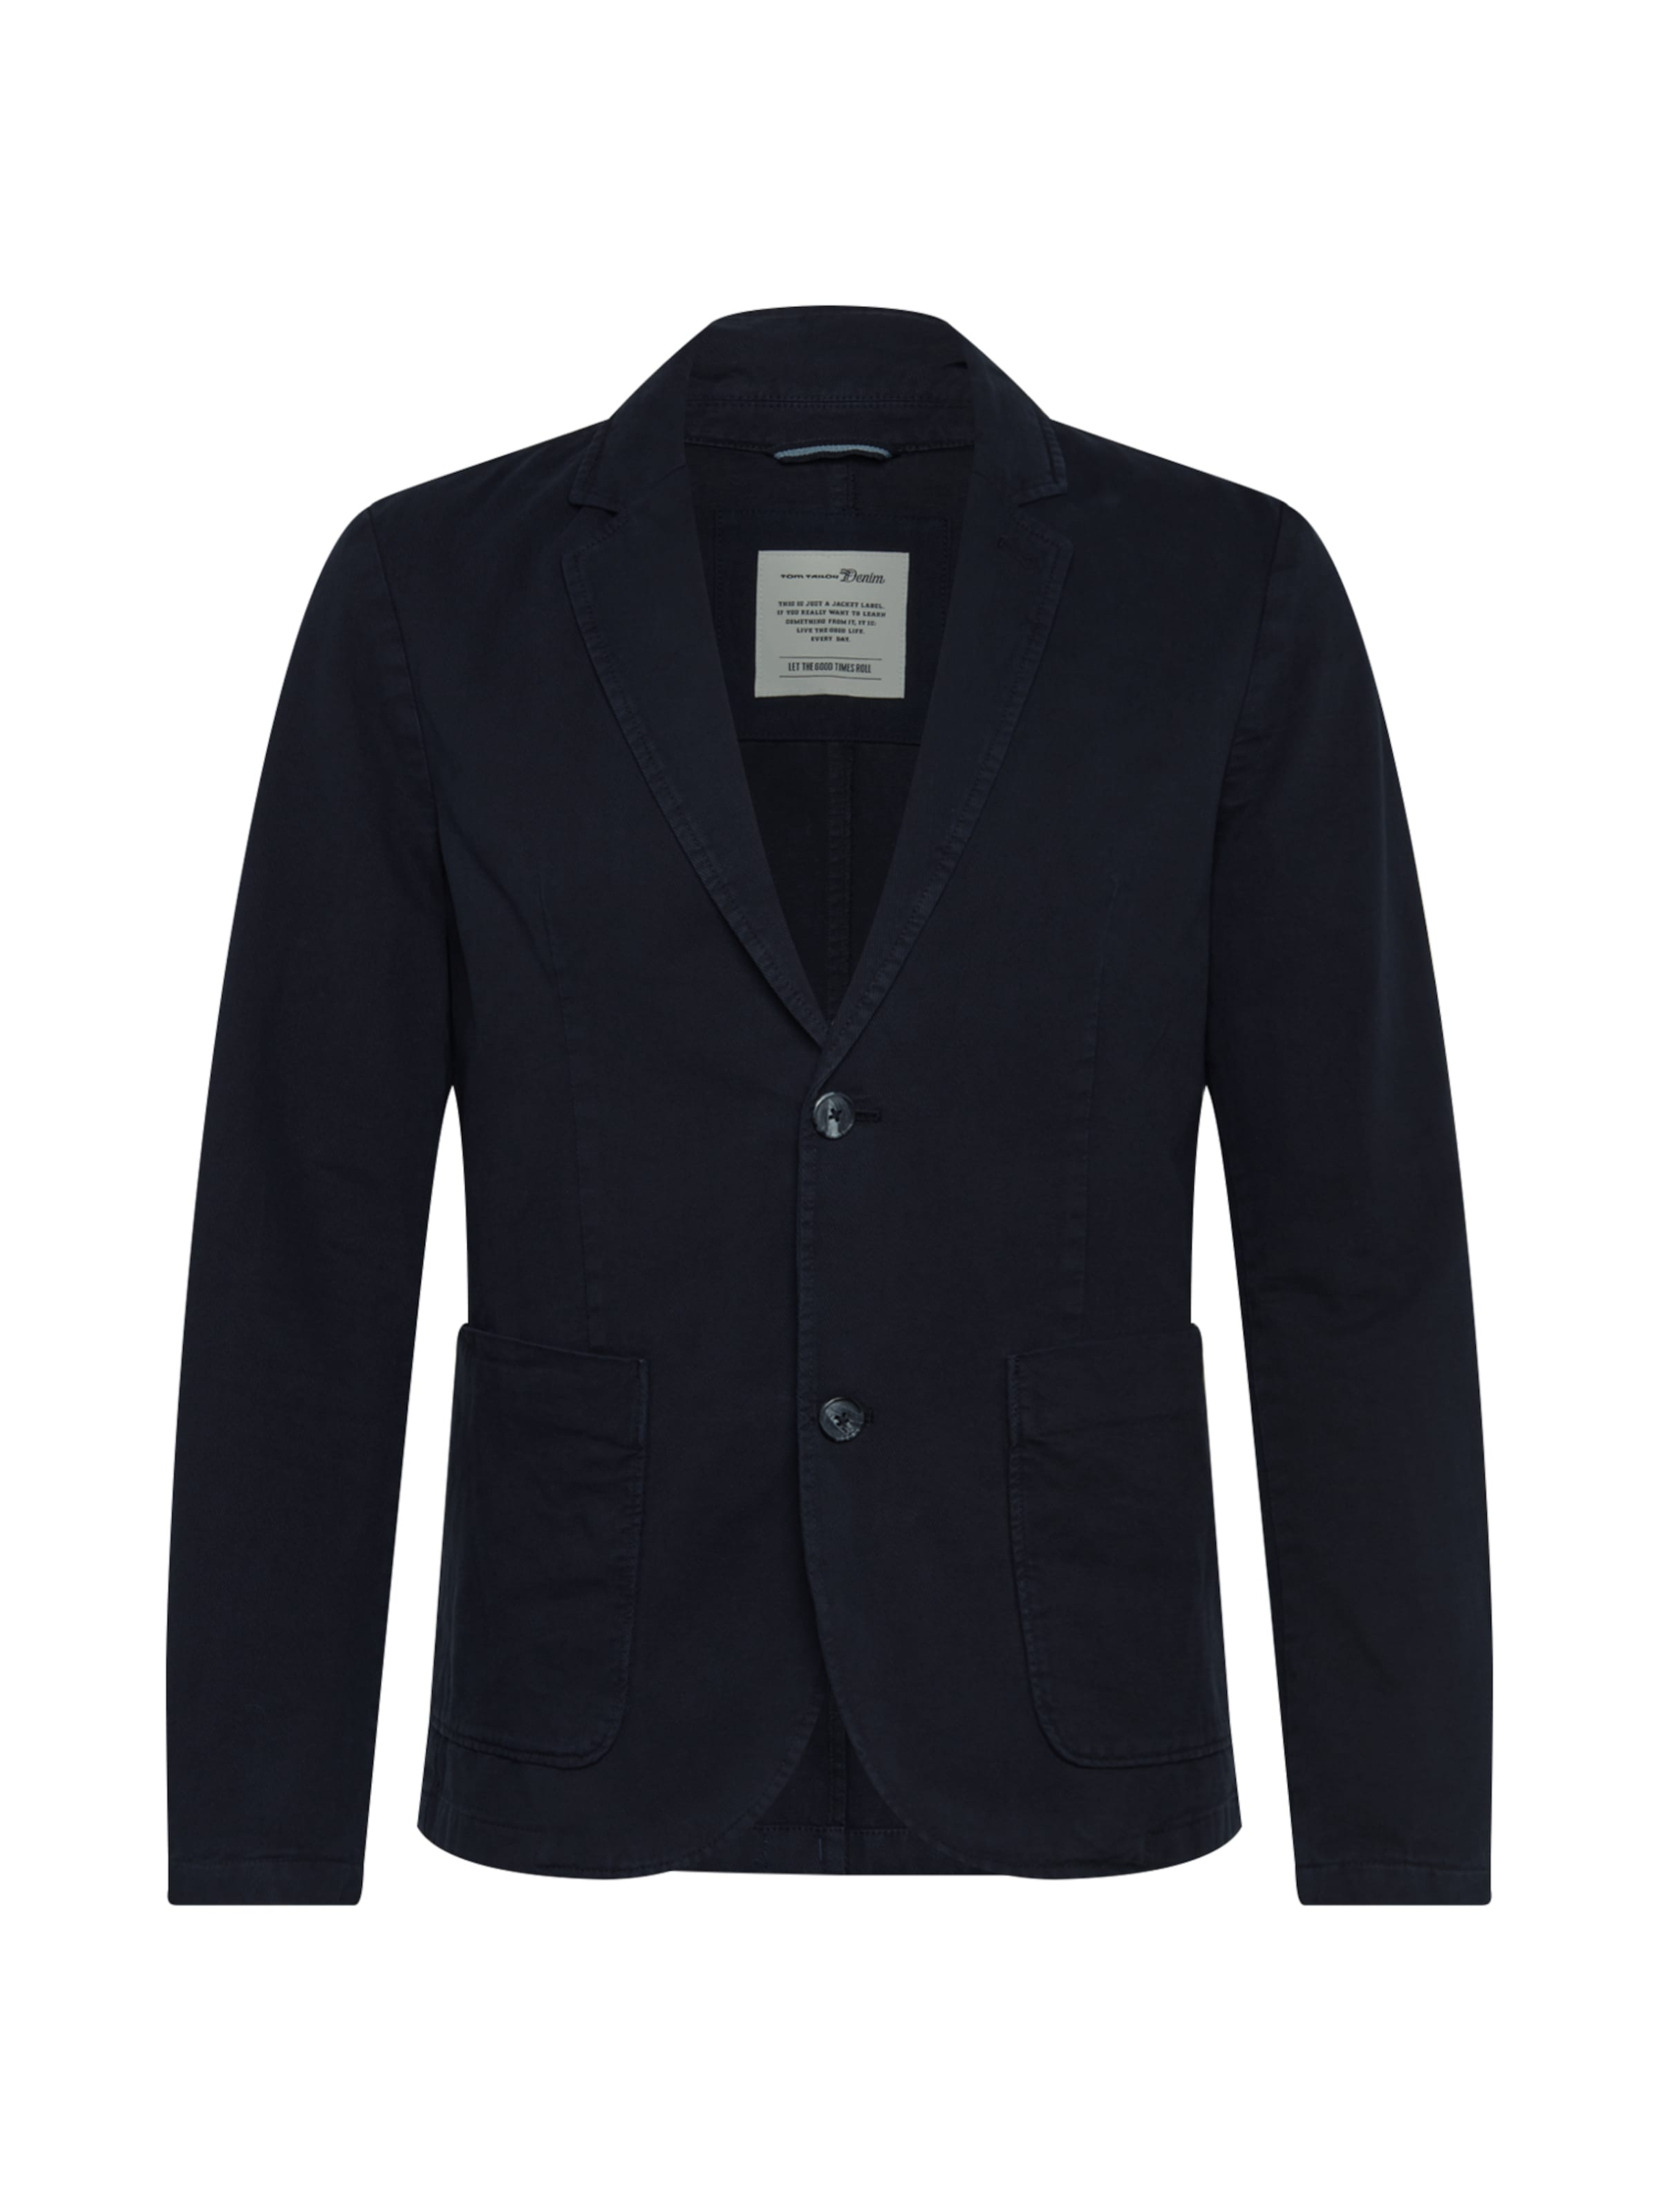 Denim In Tom Nachtblau Tailor Blazer CWodBQrxe